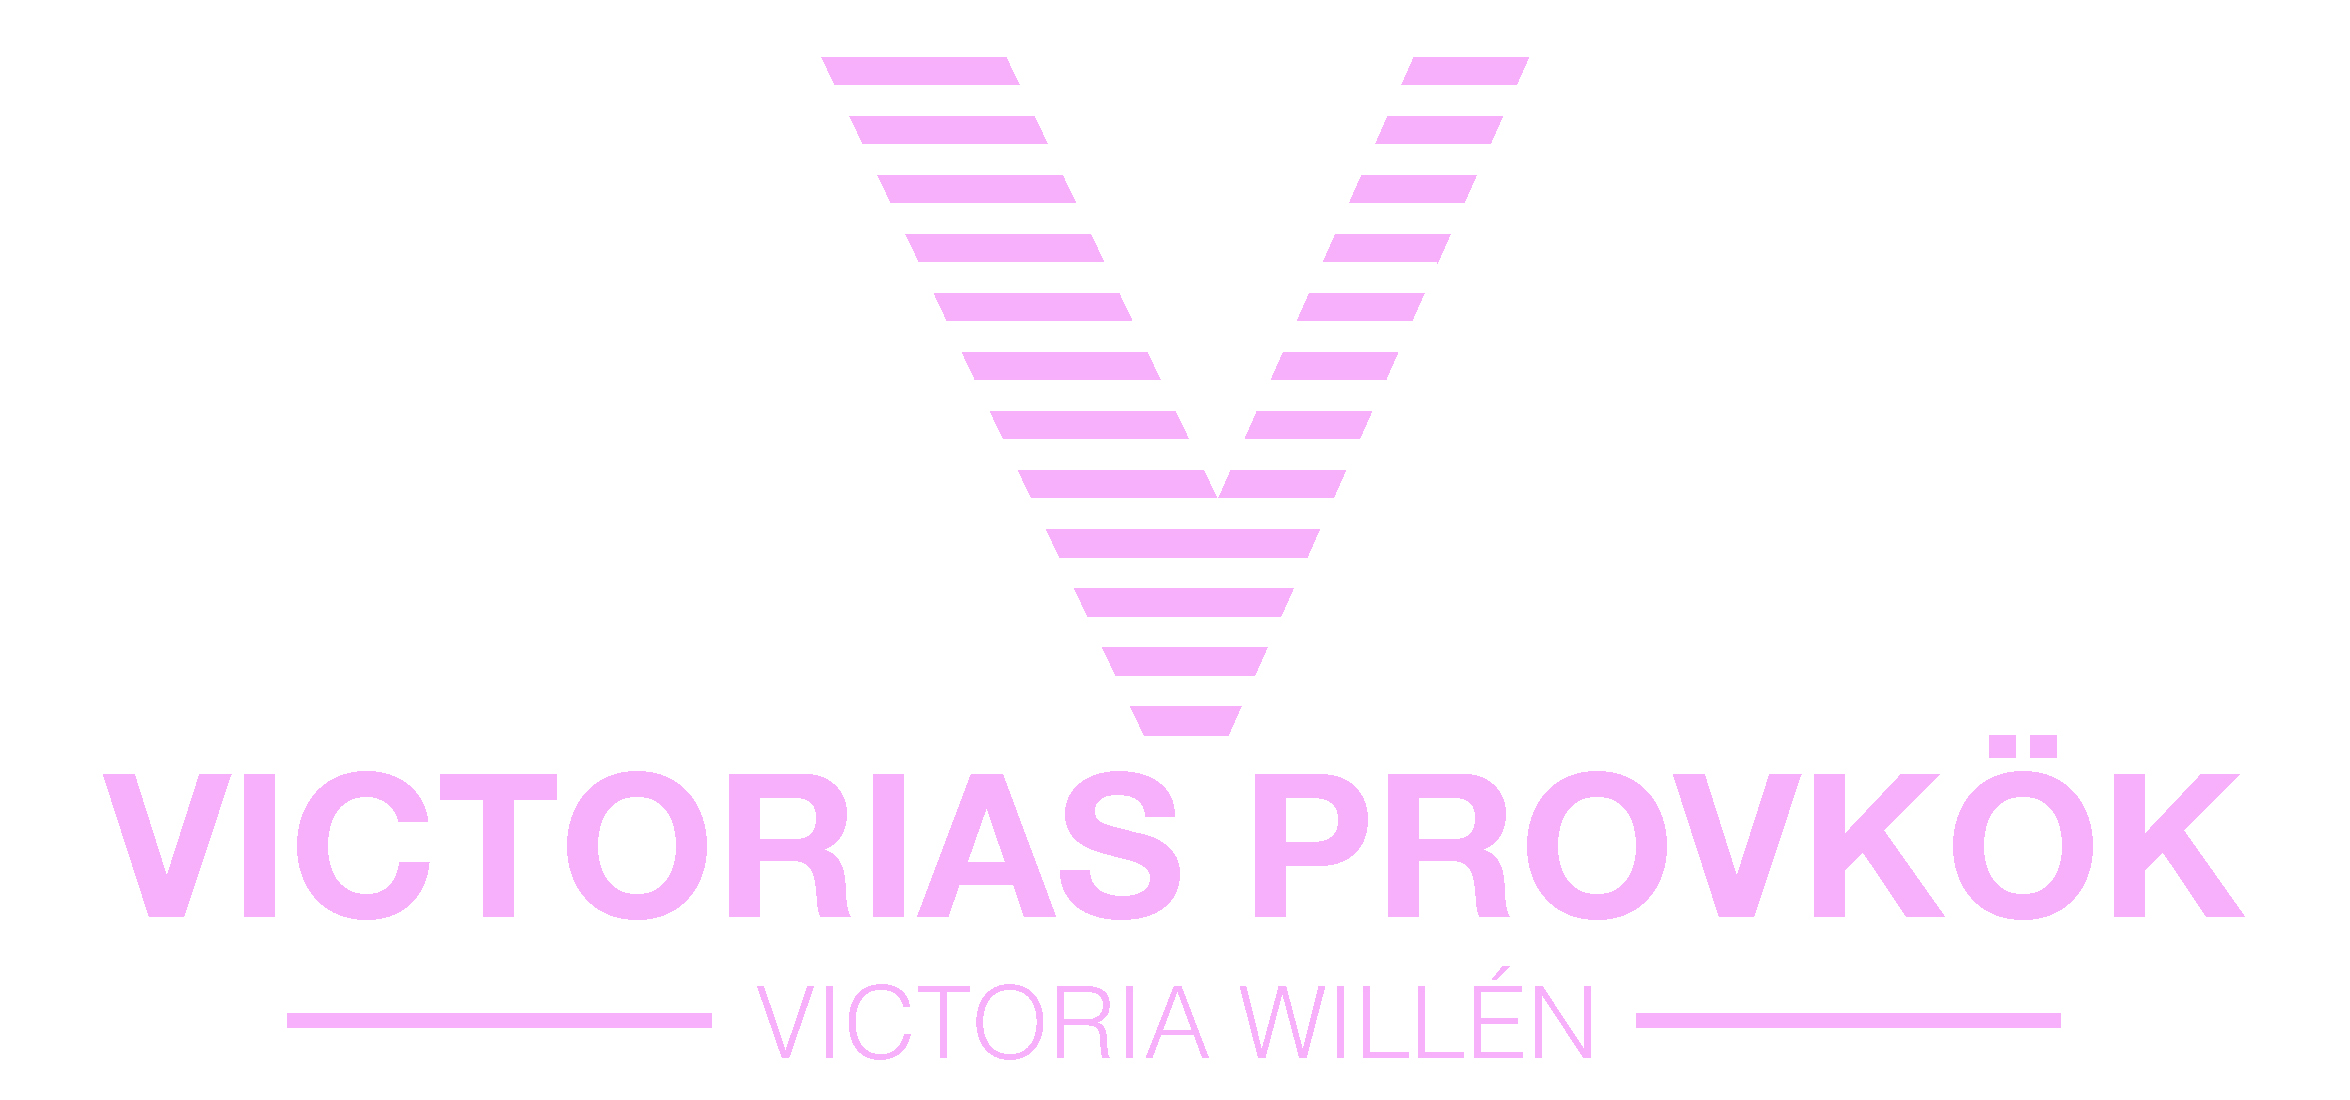 Victorias provkök